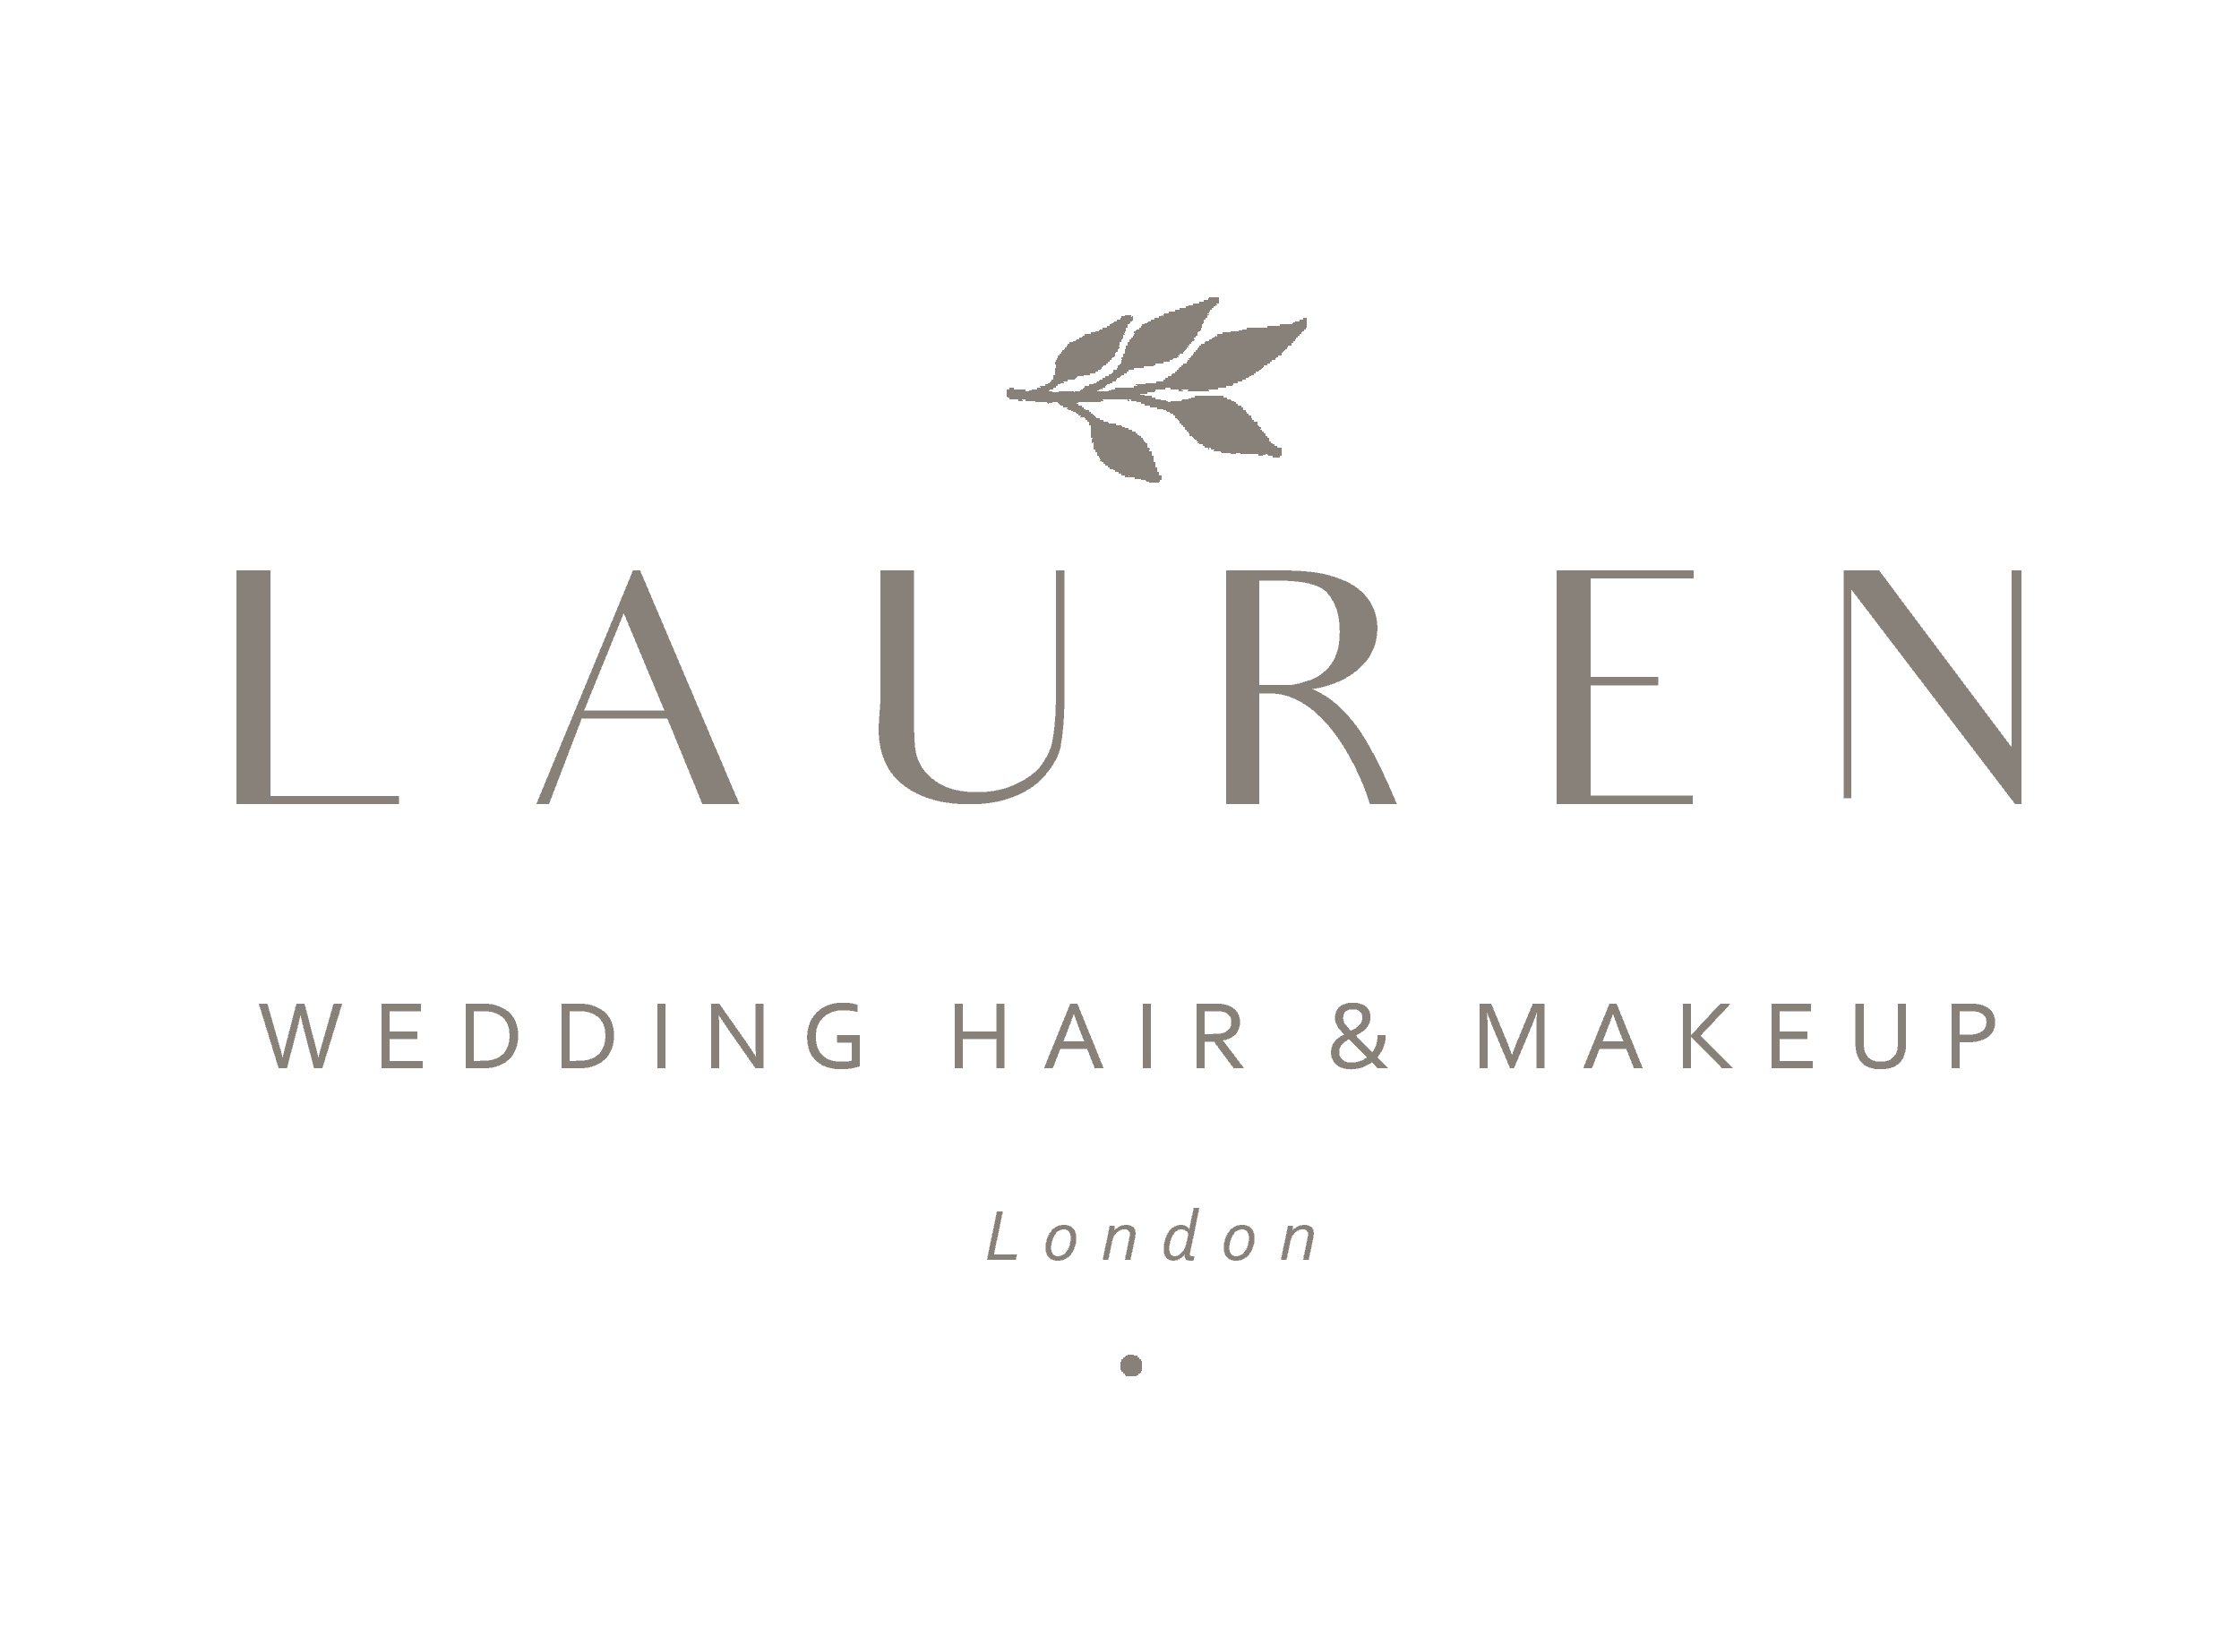 Wedding Hair & Makeup by Lauren